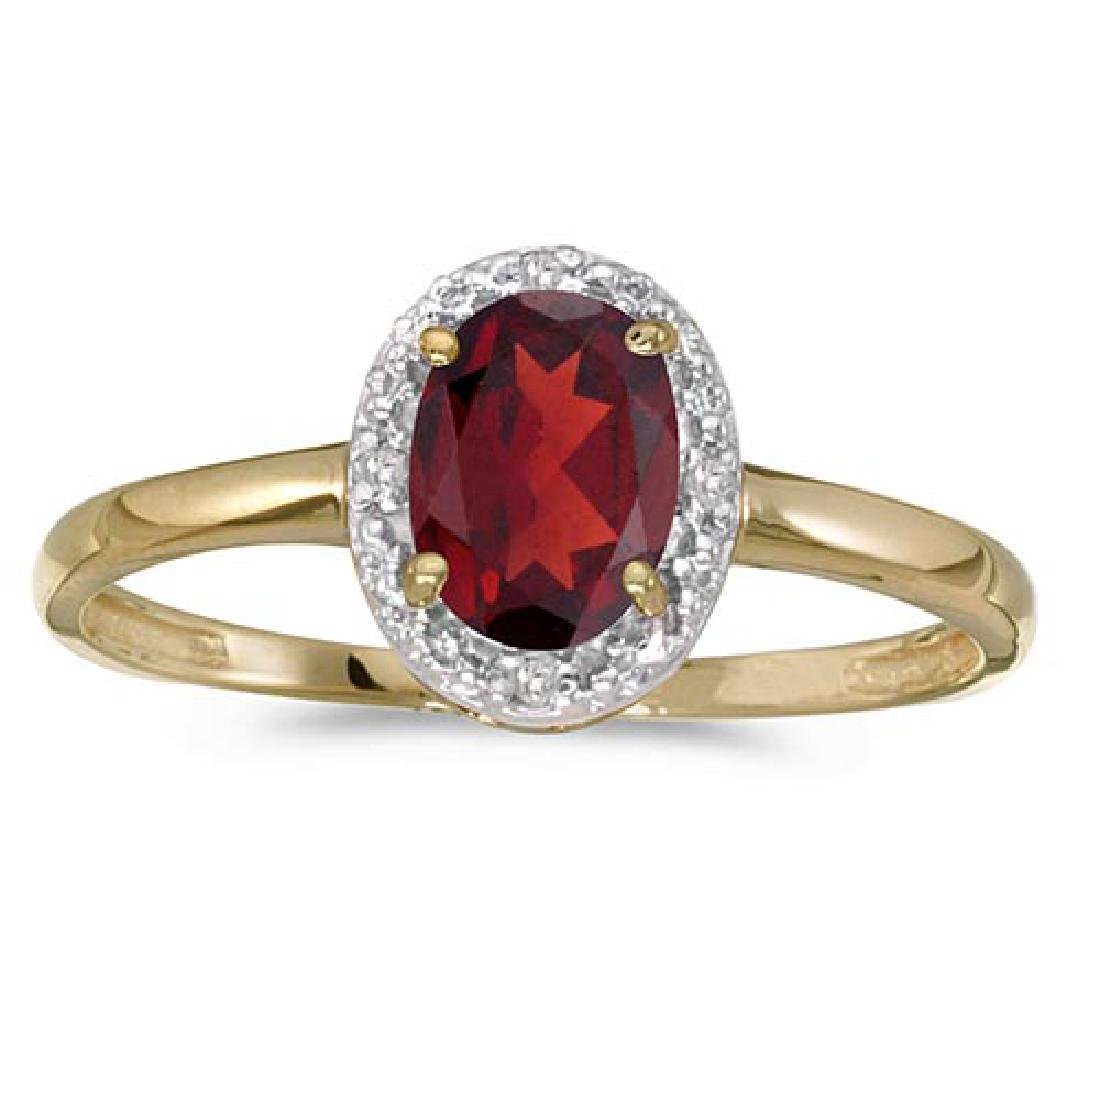 Certified 10k Yellow Gold Oval Garnet And Diamond Ring